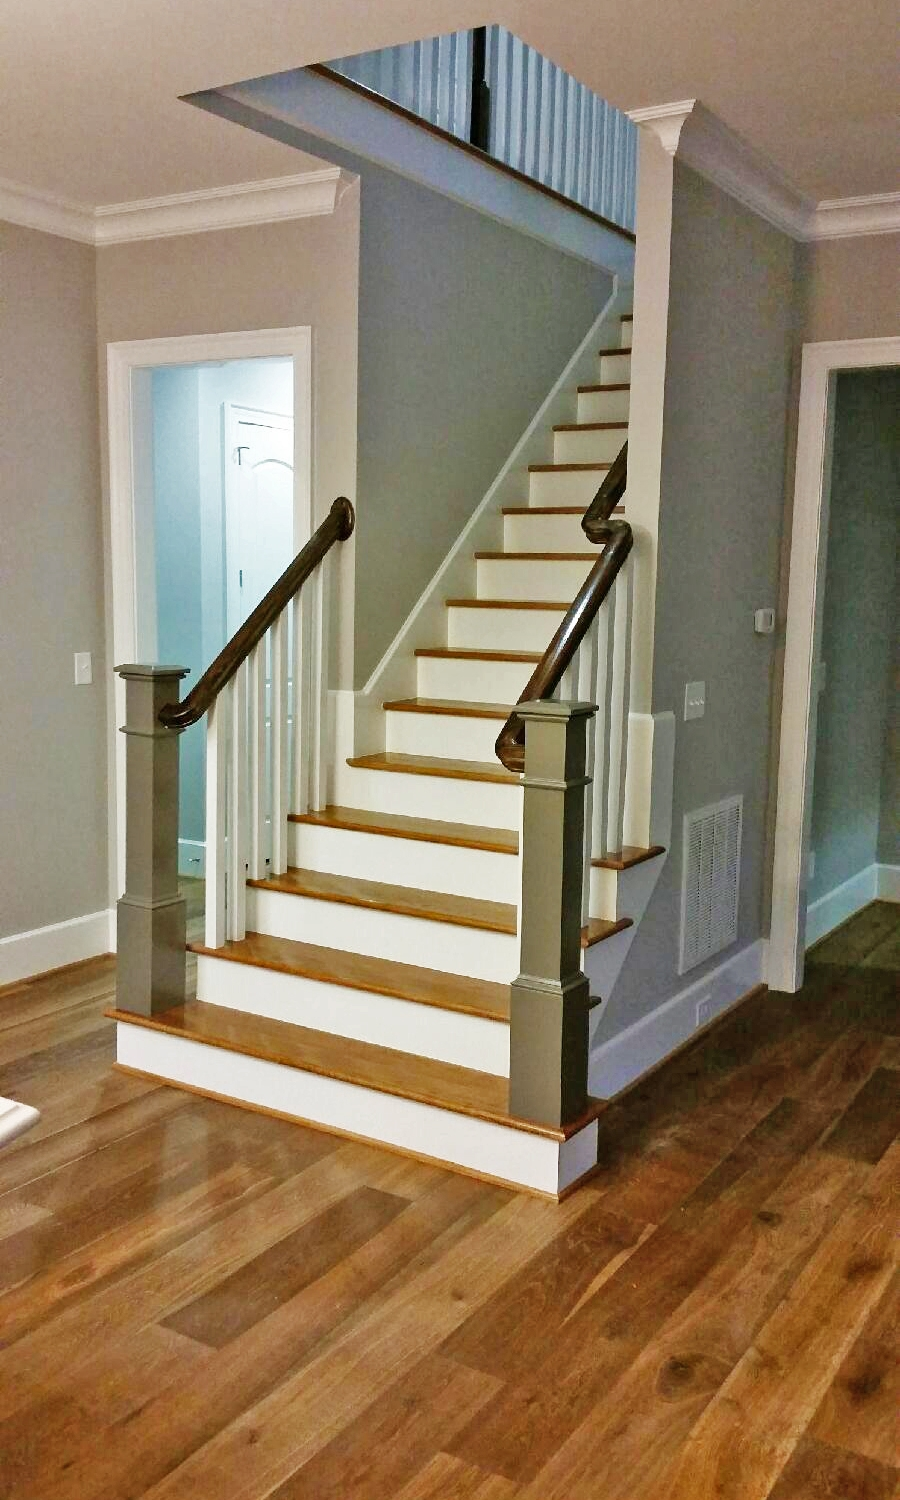 Creech - Staircase with Stained Railing & Steps.jpg